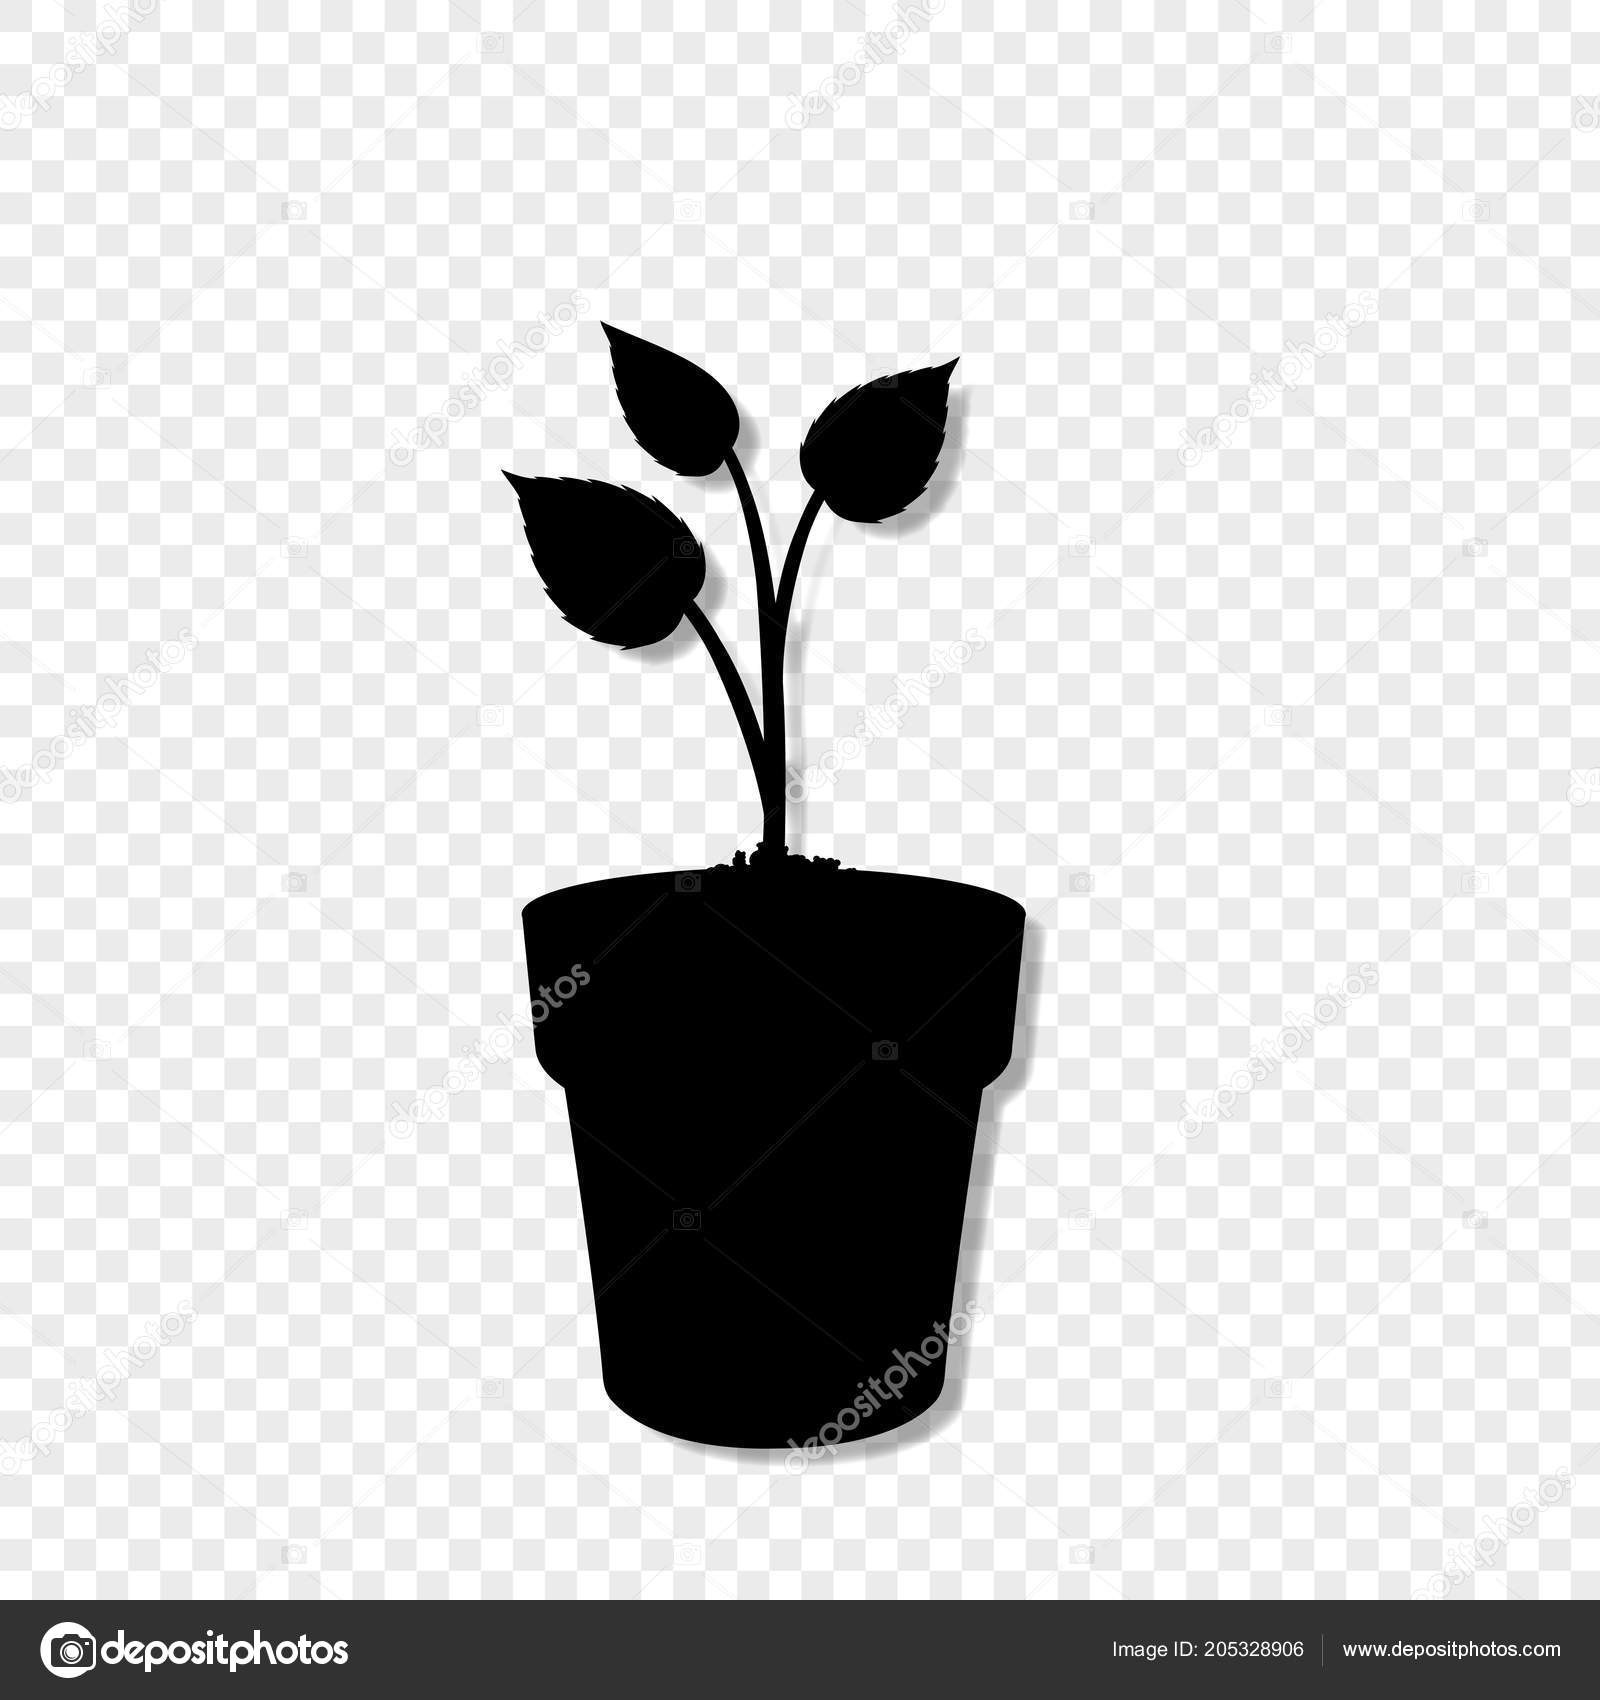 Black Silhouette Of Sprouting Plant In The Pot Isolated On Transparent Background Seeding Vector Illustration Icon Sign Template For Design